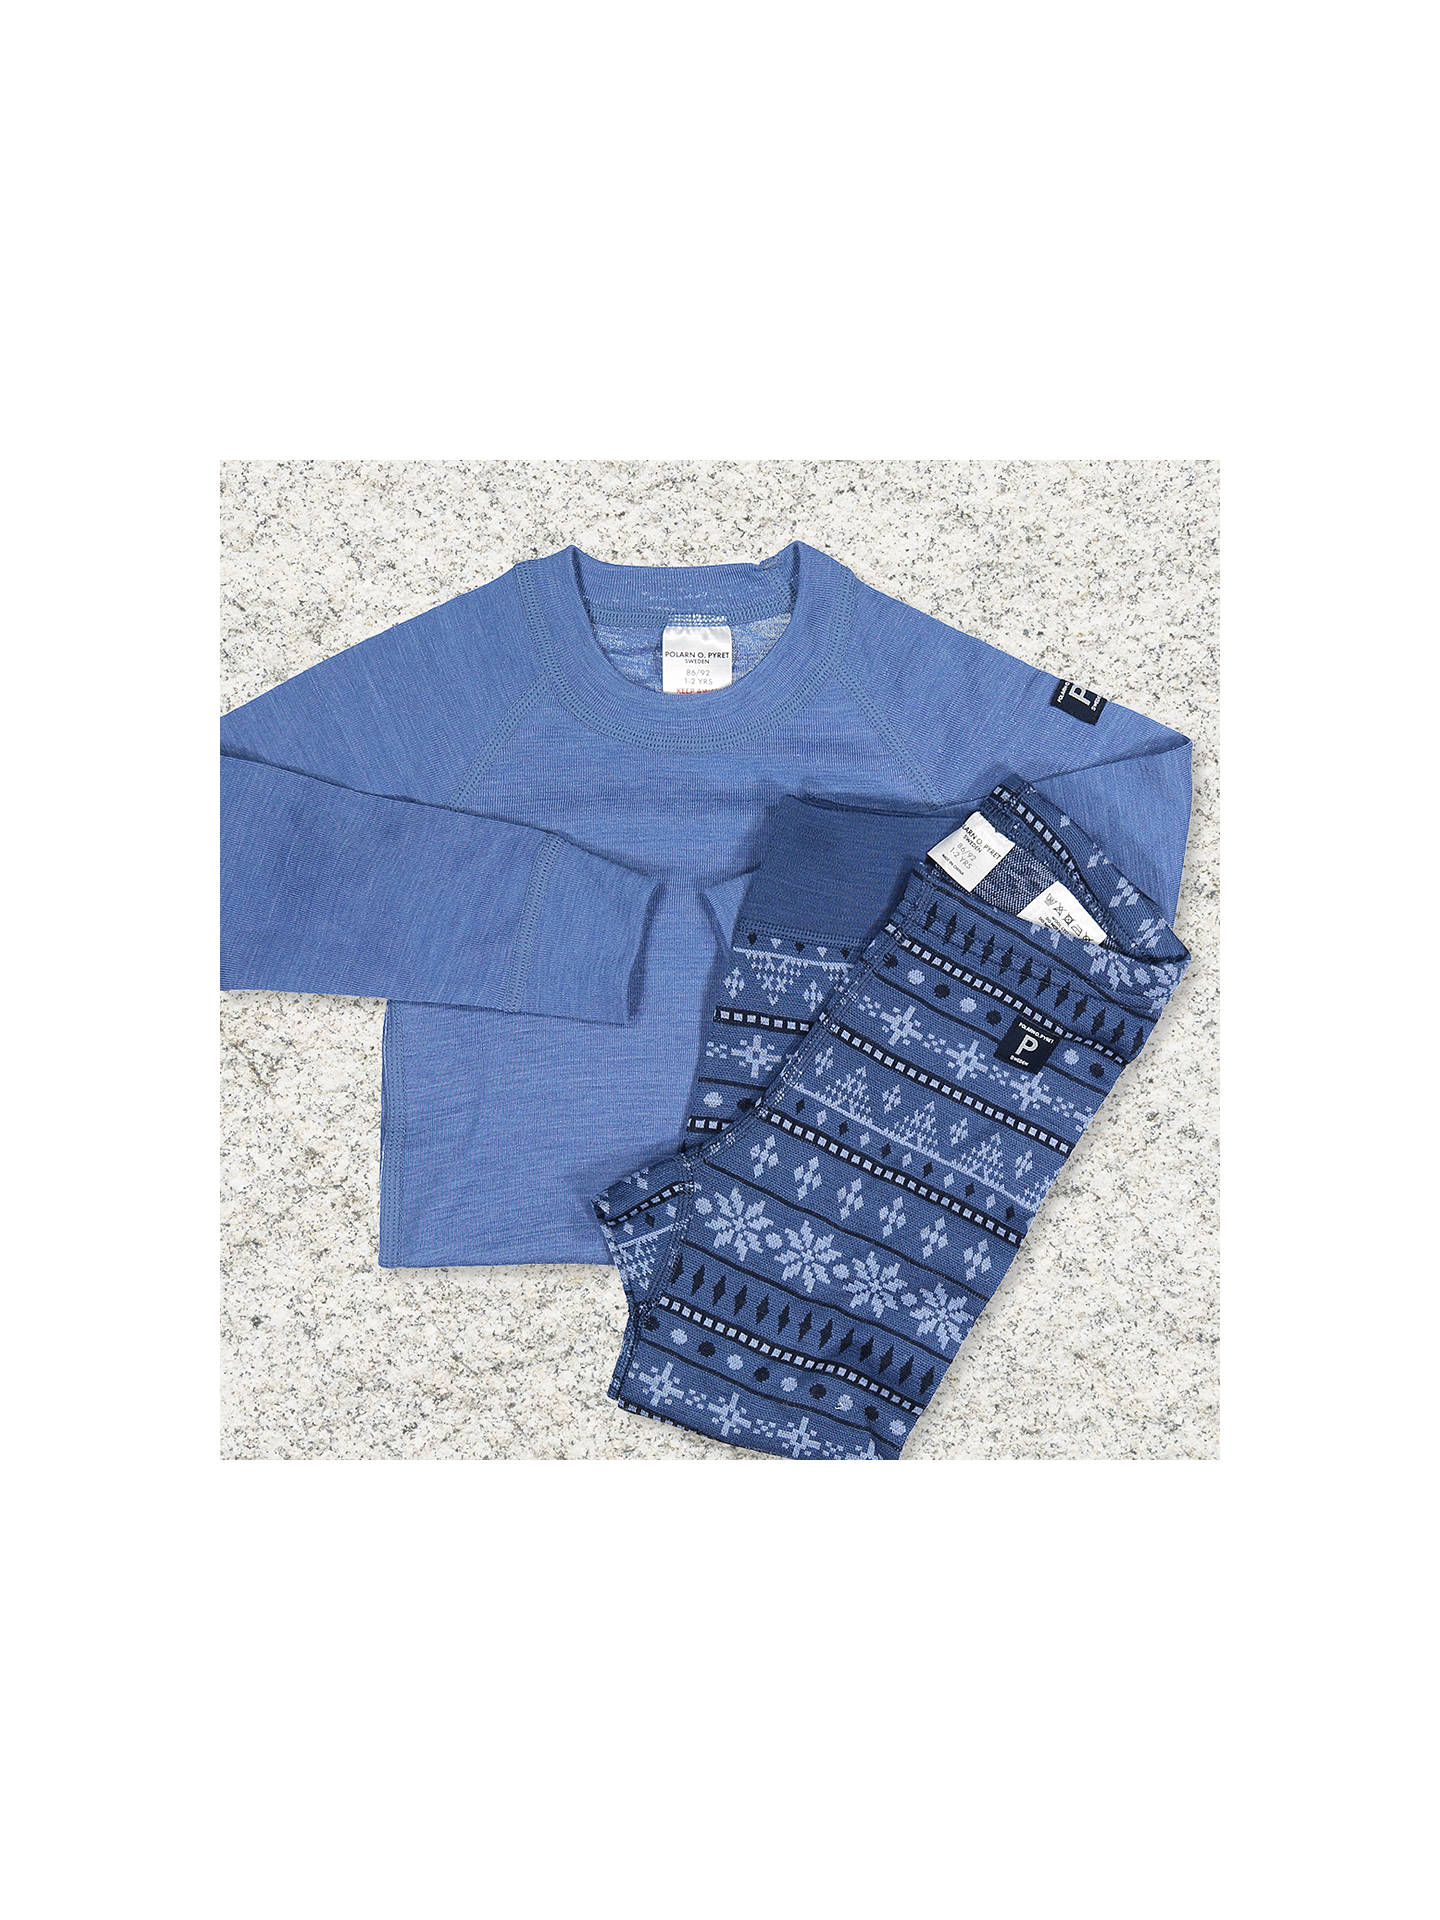 BuyPolarn O. Pyret Baby Merino Long Johns, Blue, 6-12 months Online at johnlewis.com